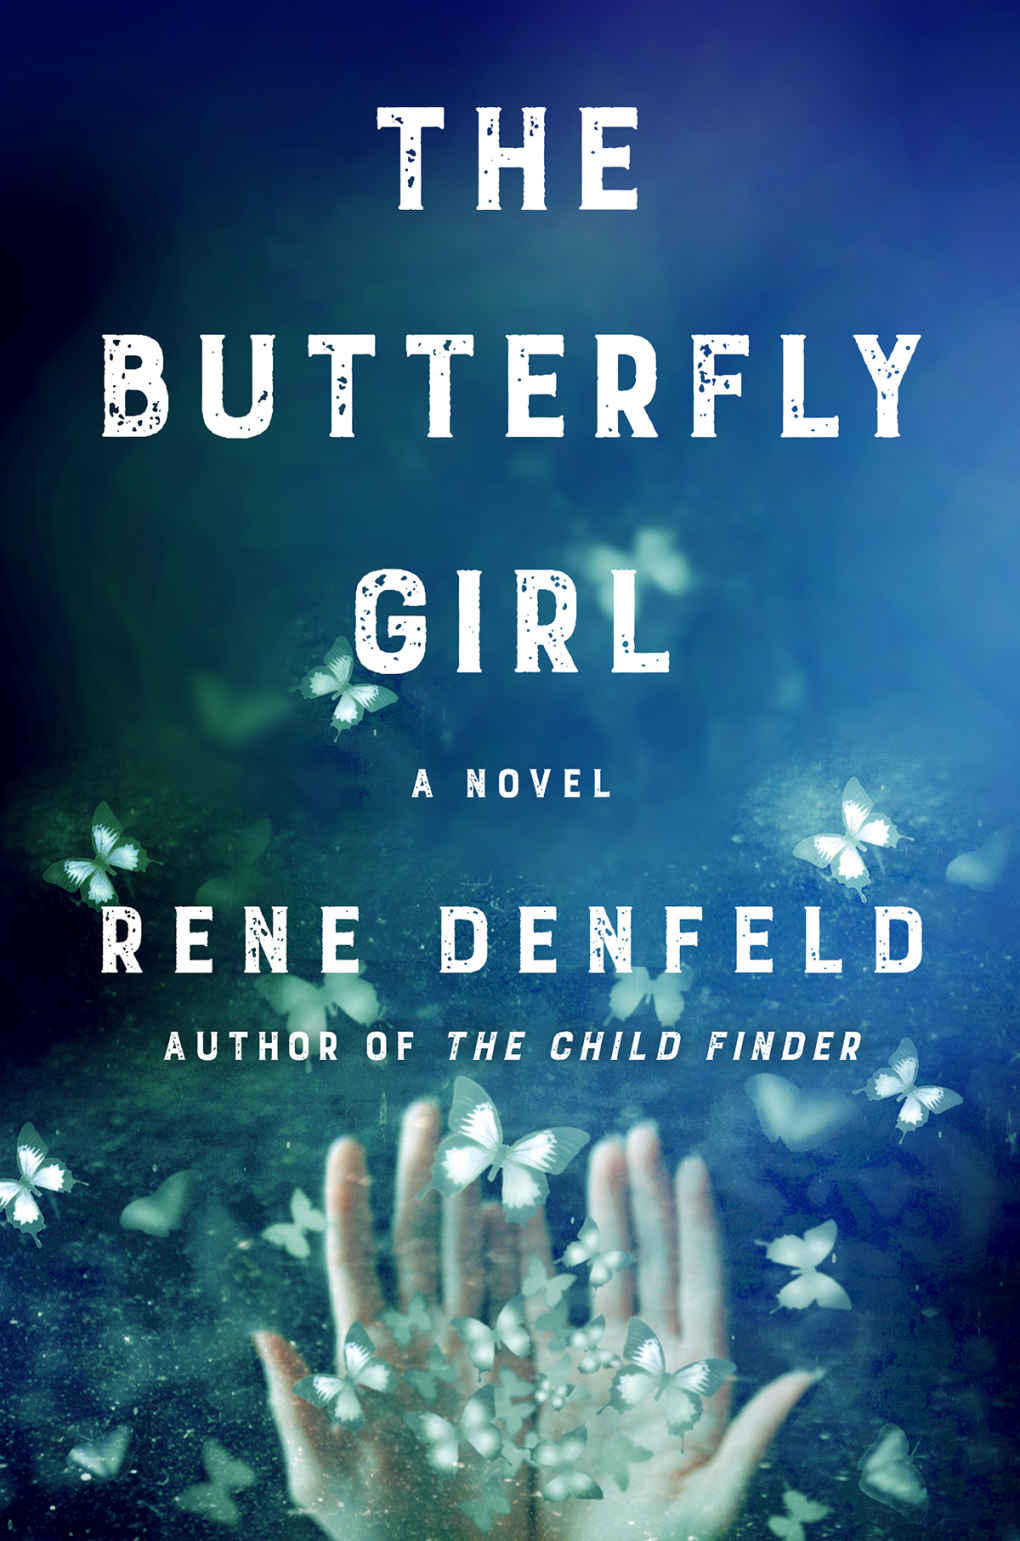 Rene Denfeld's Latest, The Butterfly Girl, Is A Must Read This Fall